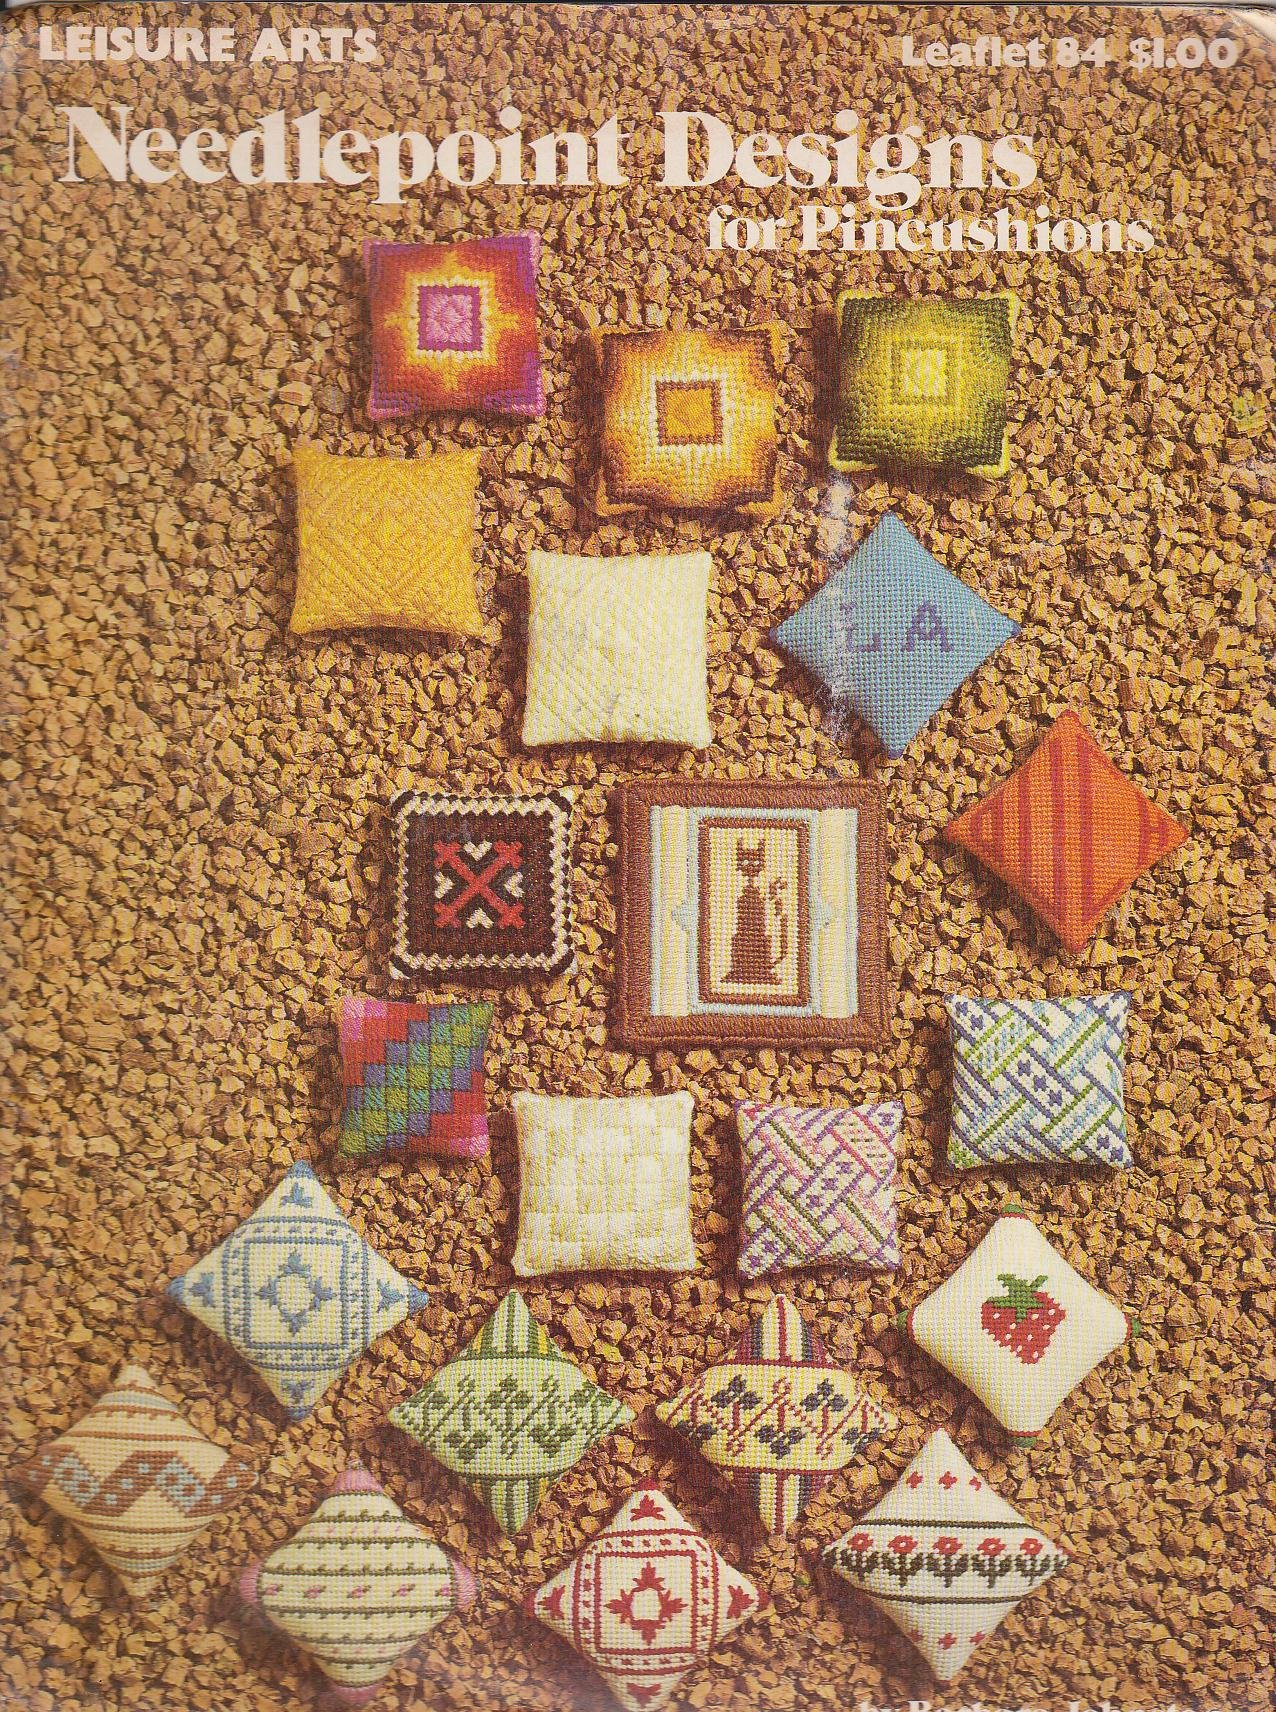 Needlepoint designs for pincushions (Leisure Arts leaflet 84)